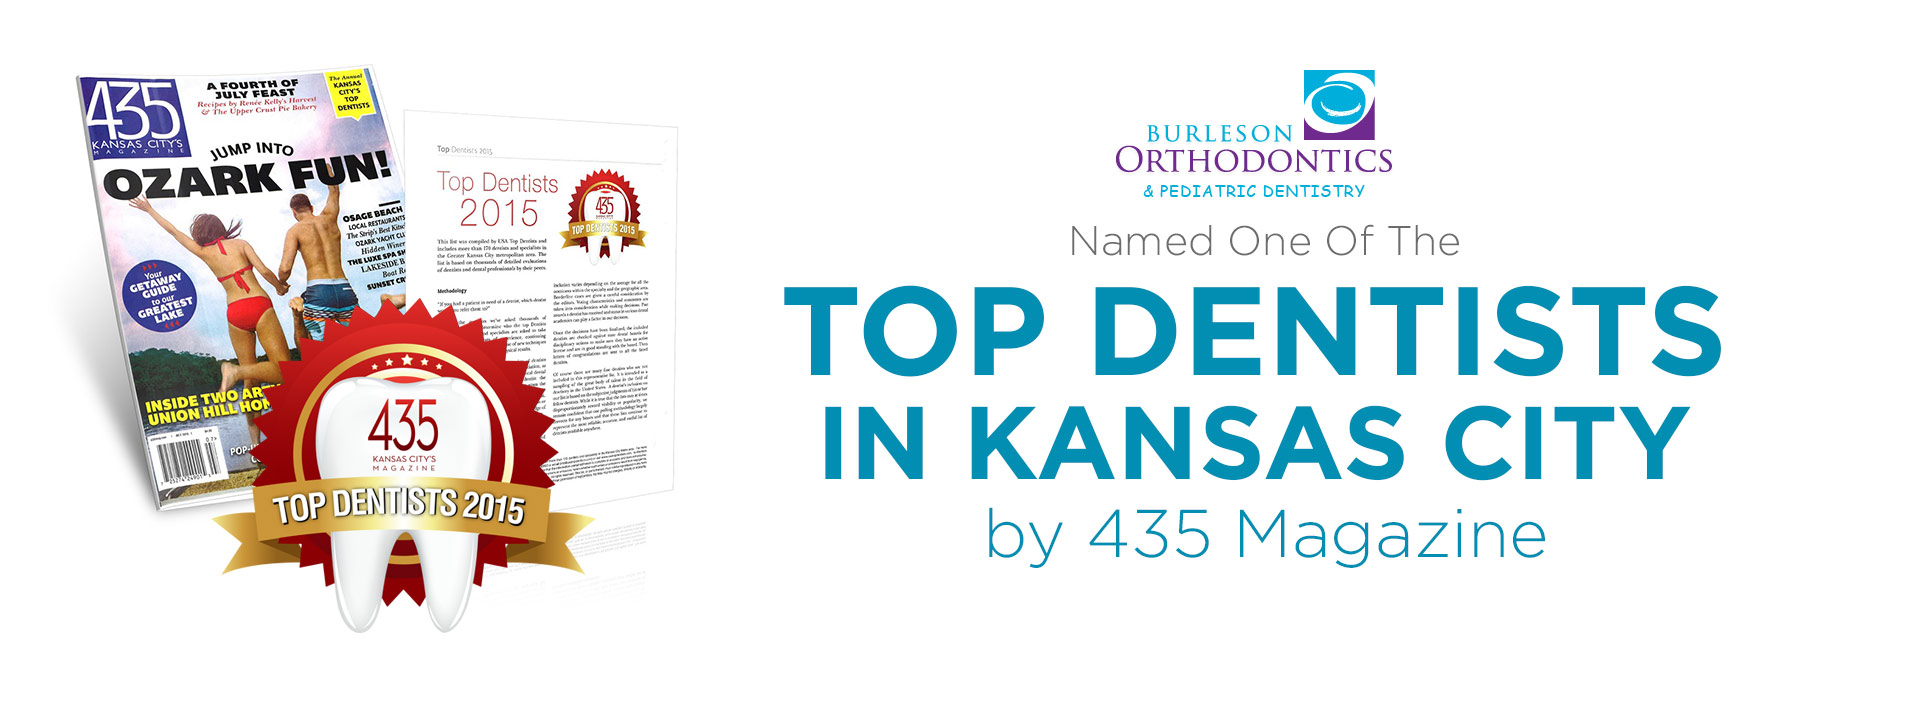 top dentist in kansas city